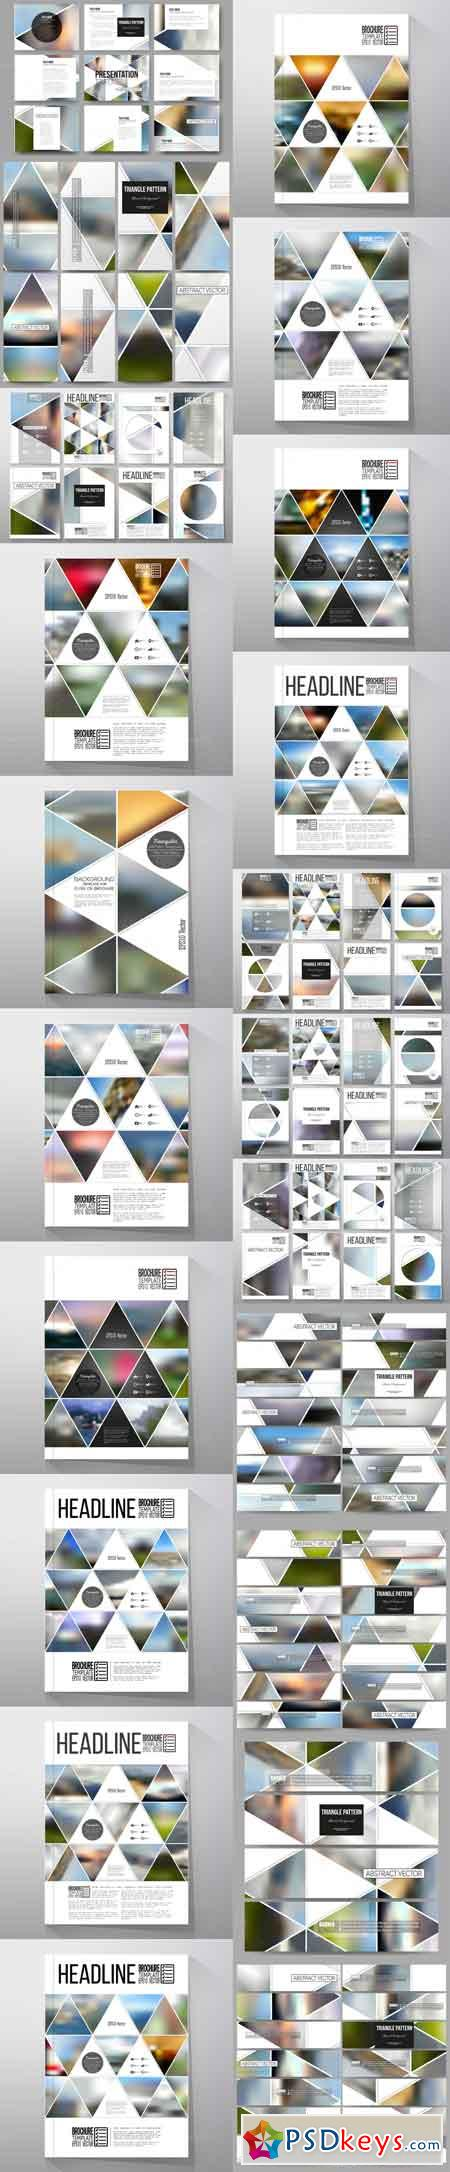 Bundle of 42 blurred templates 693071